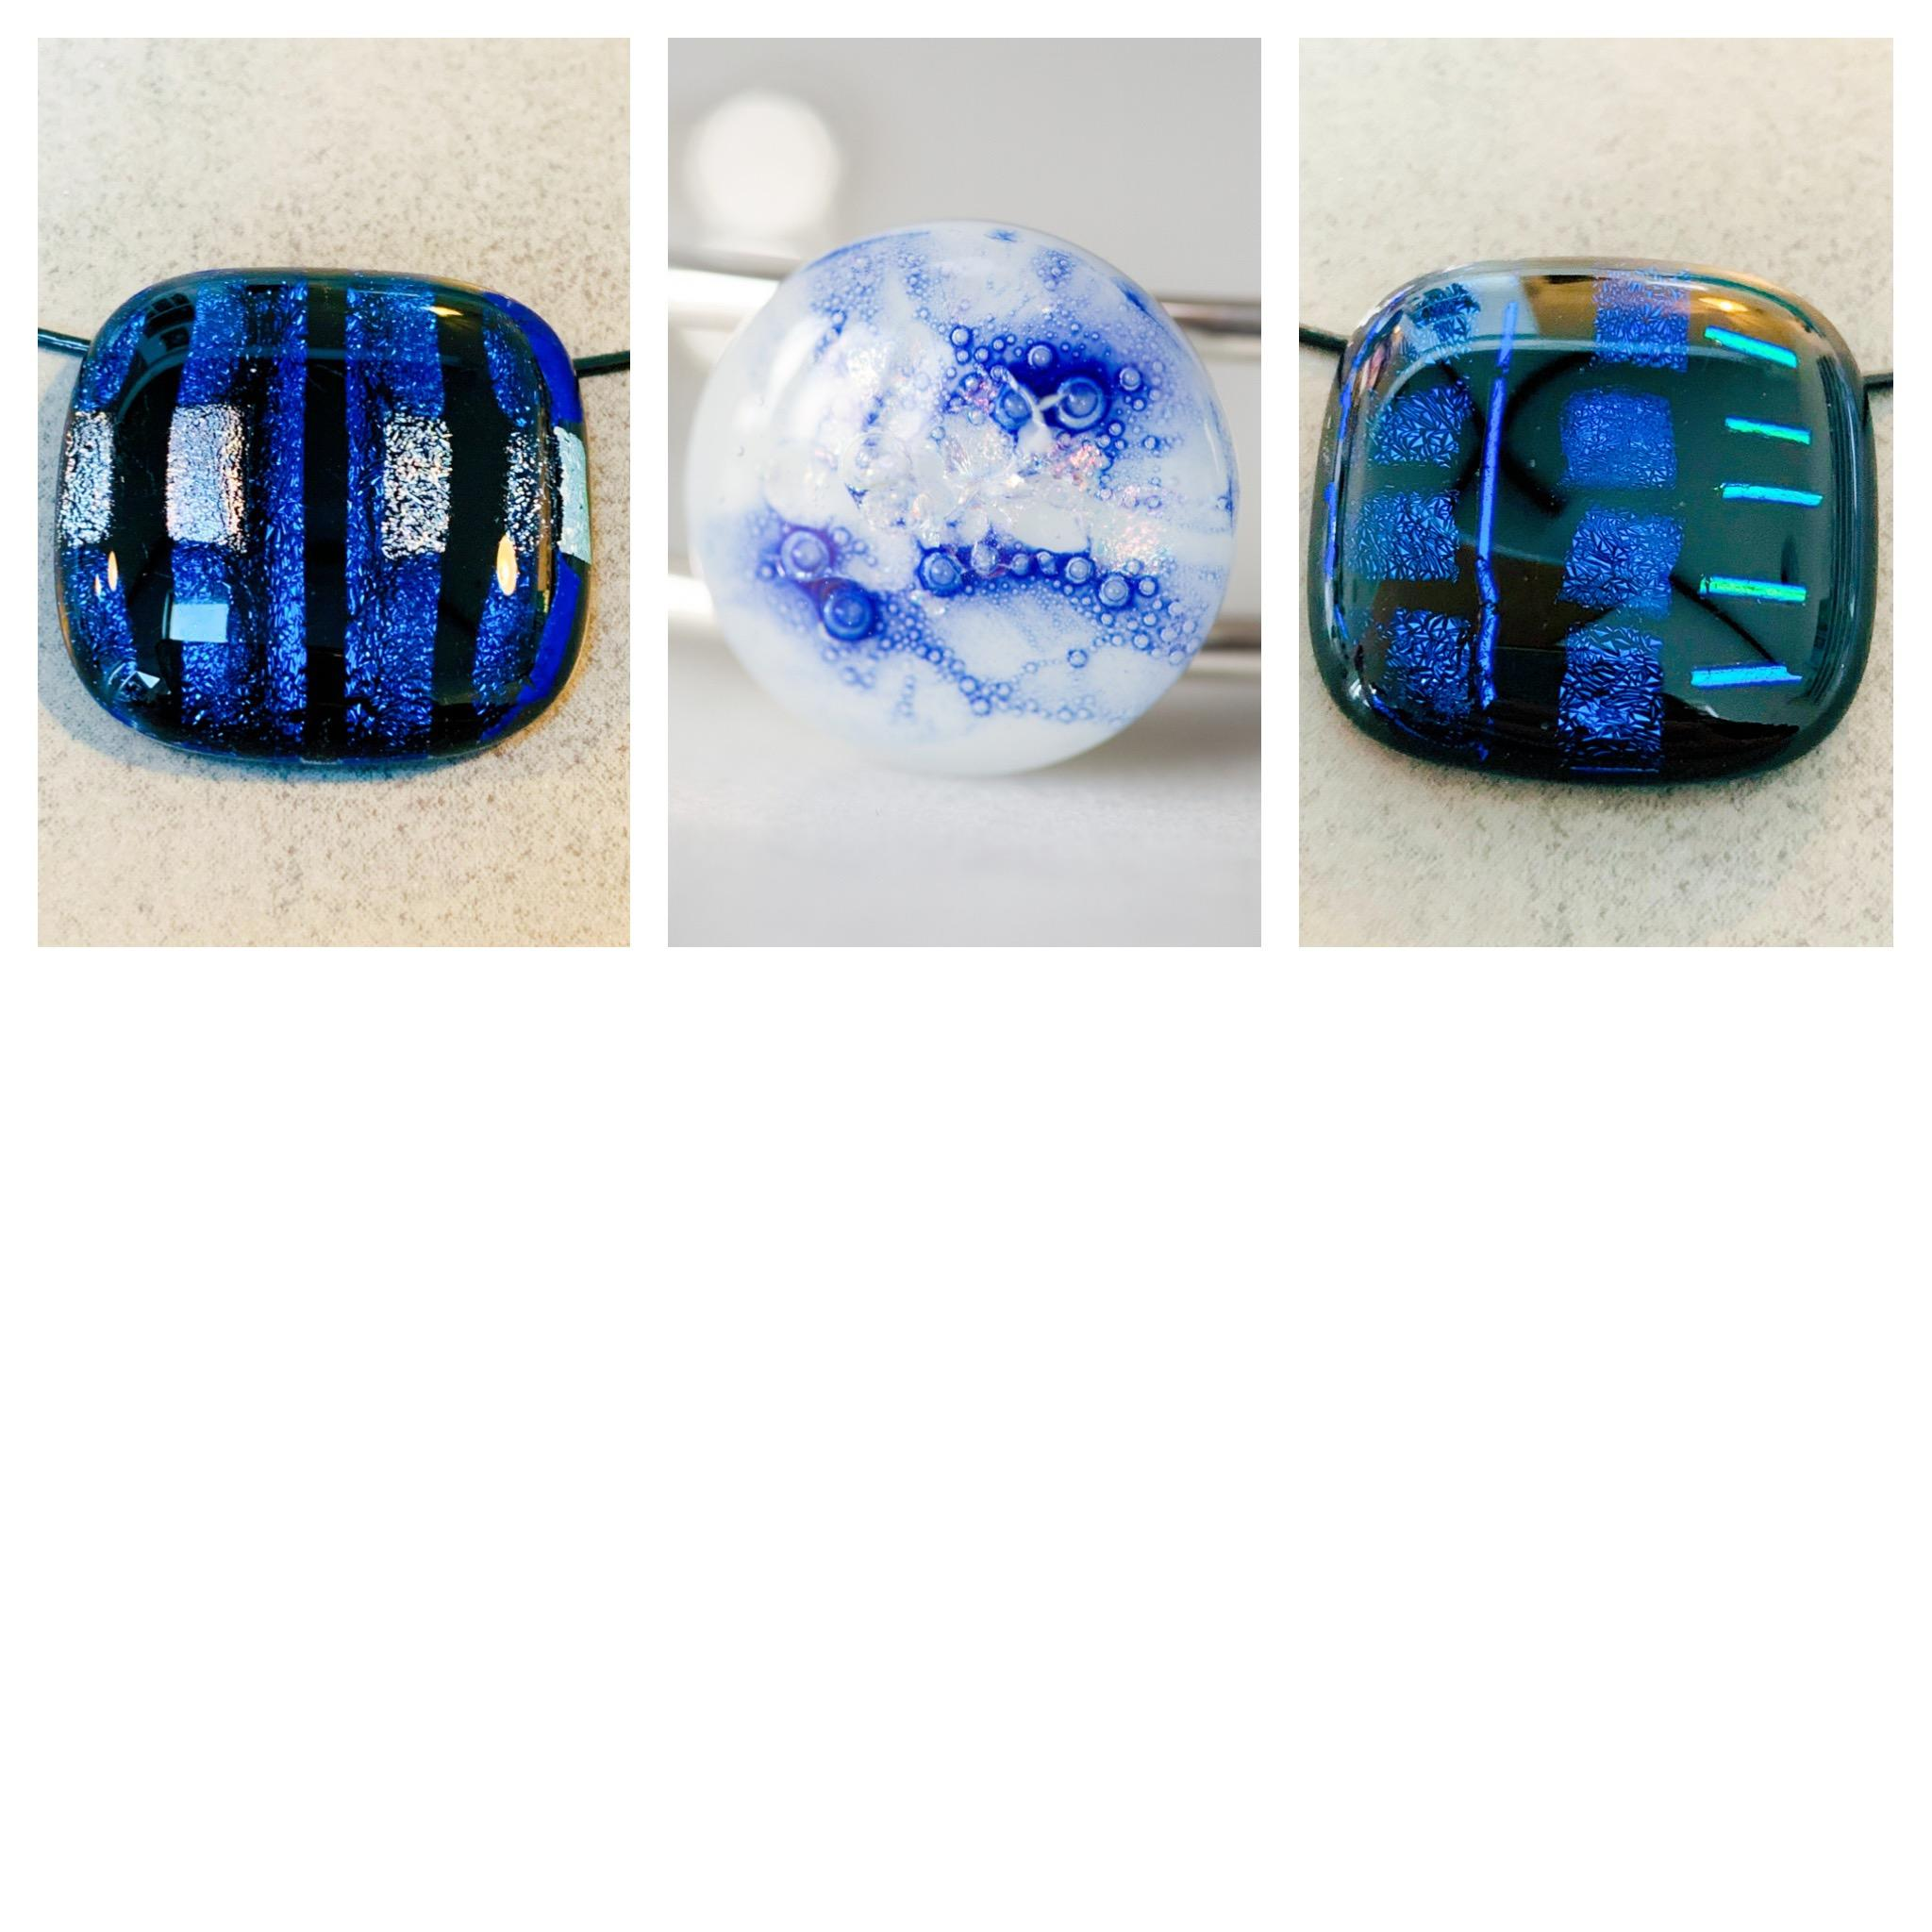 Fused glass Jewellery workshop Tuesday 18th August 7-9pm